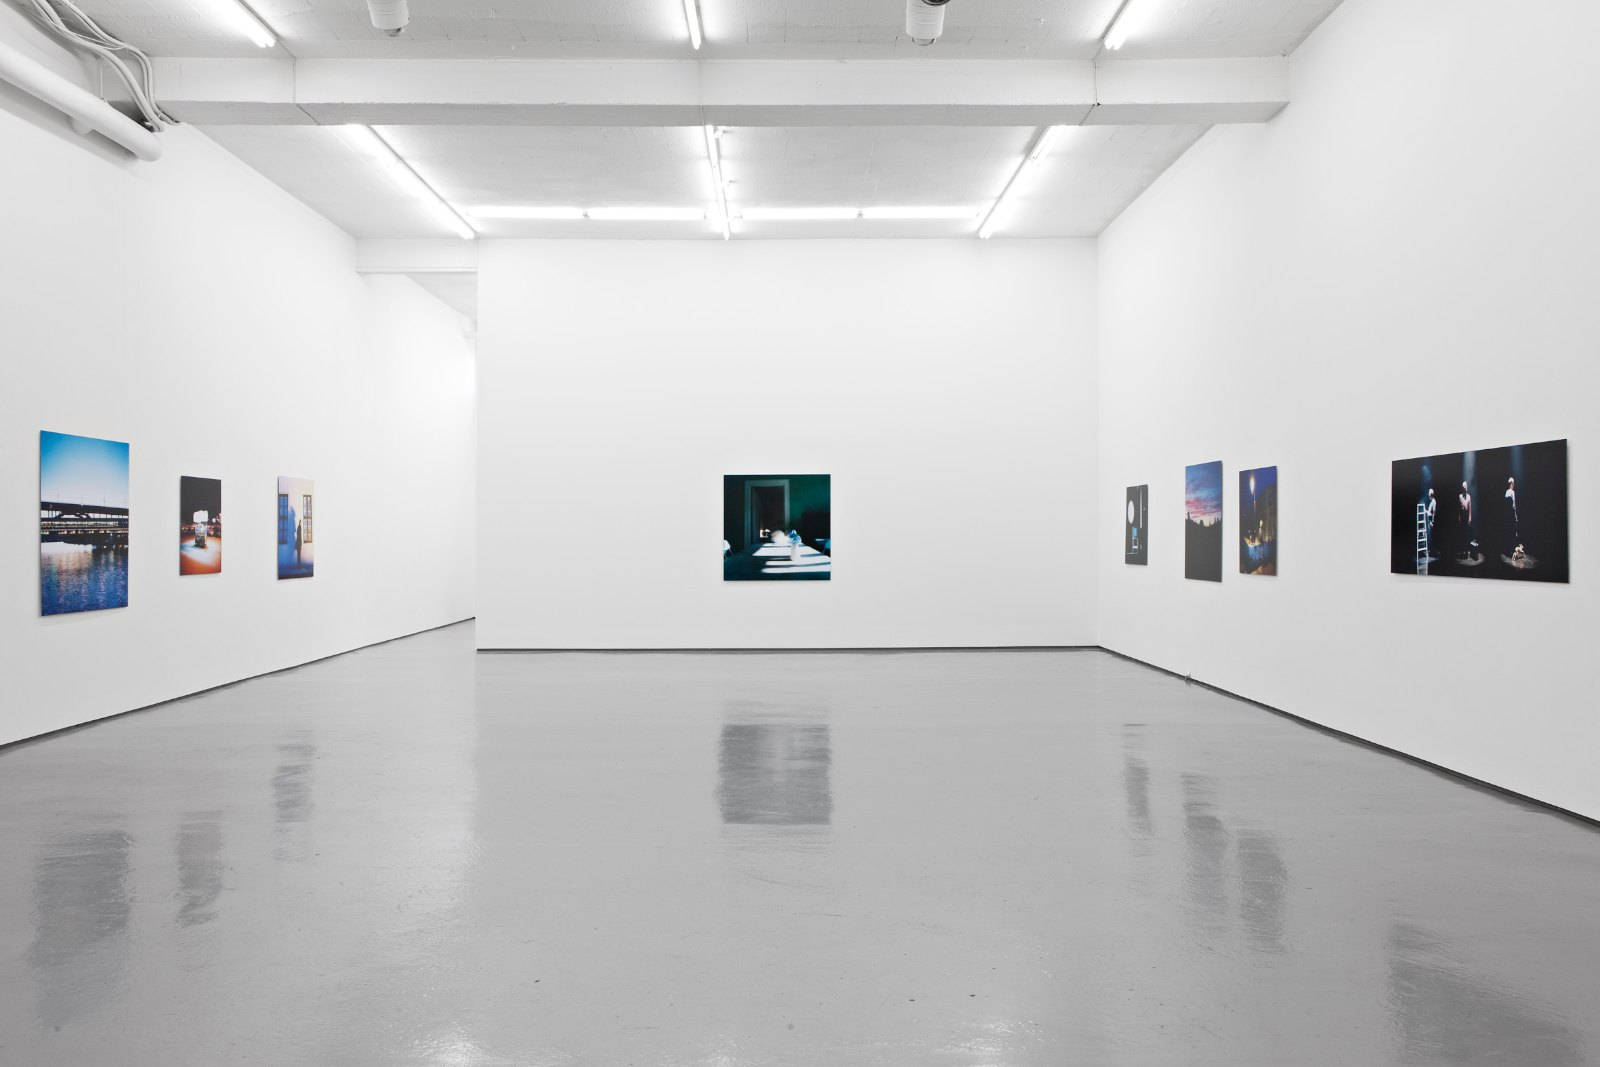 Installation view, Signe Marie Andersen, Somehow considered in a room, Galleri Riis, Oslo, 2011